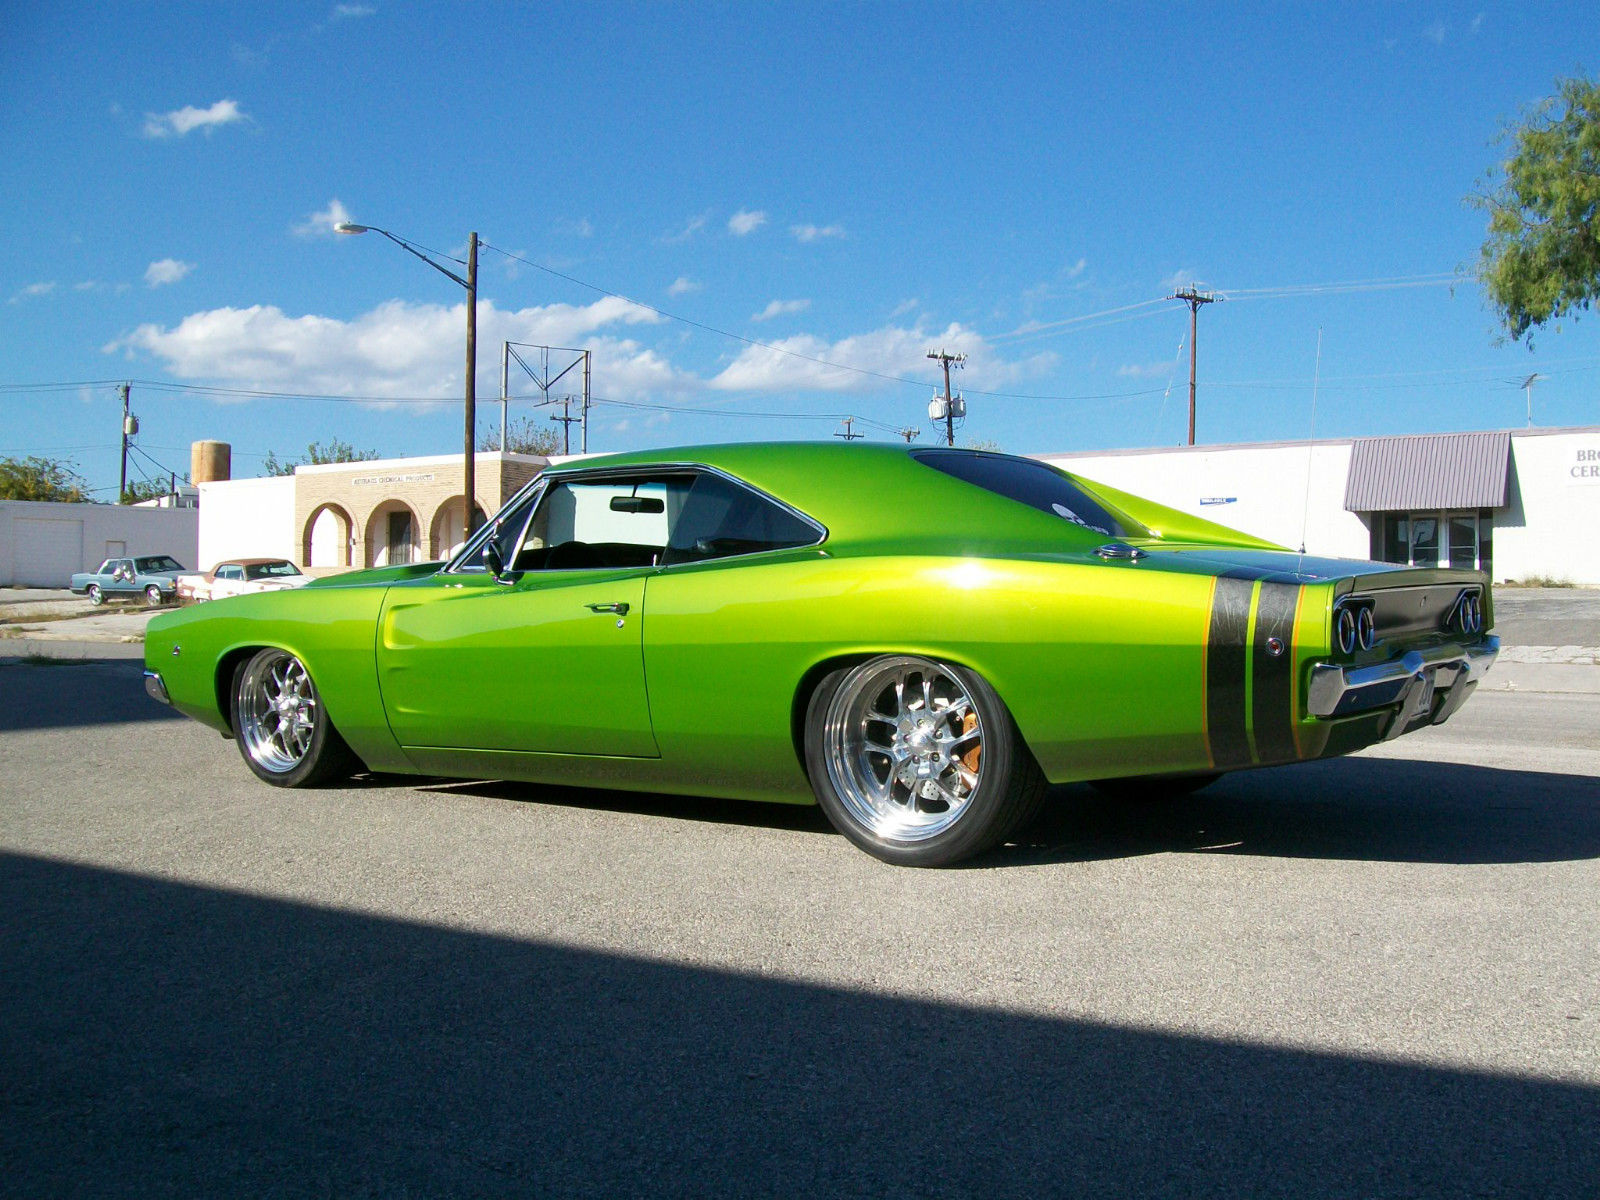 Ebay find: 1968 Dodge Charger | AmcarGuide.com - American muscle car ...